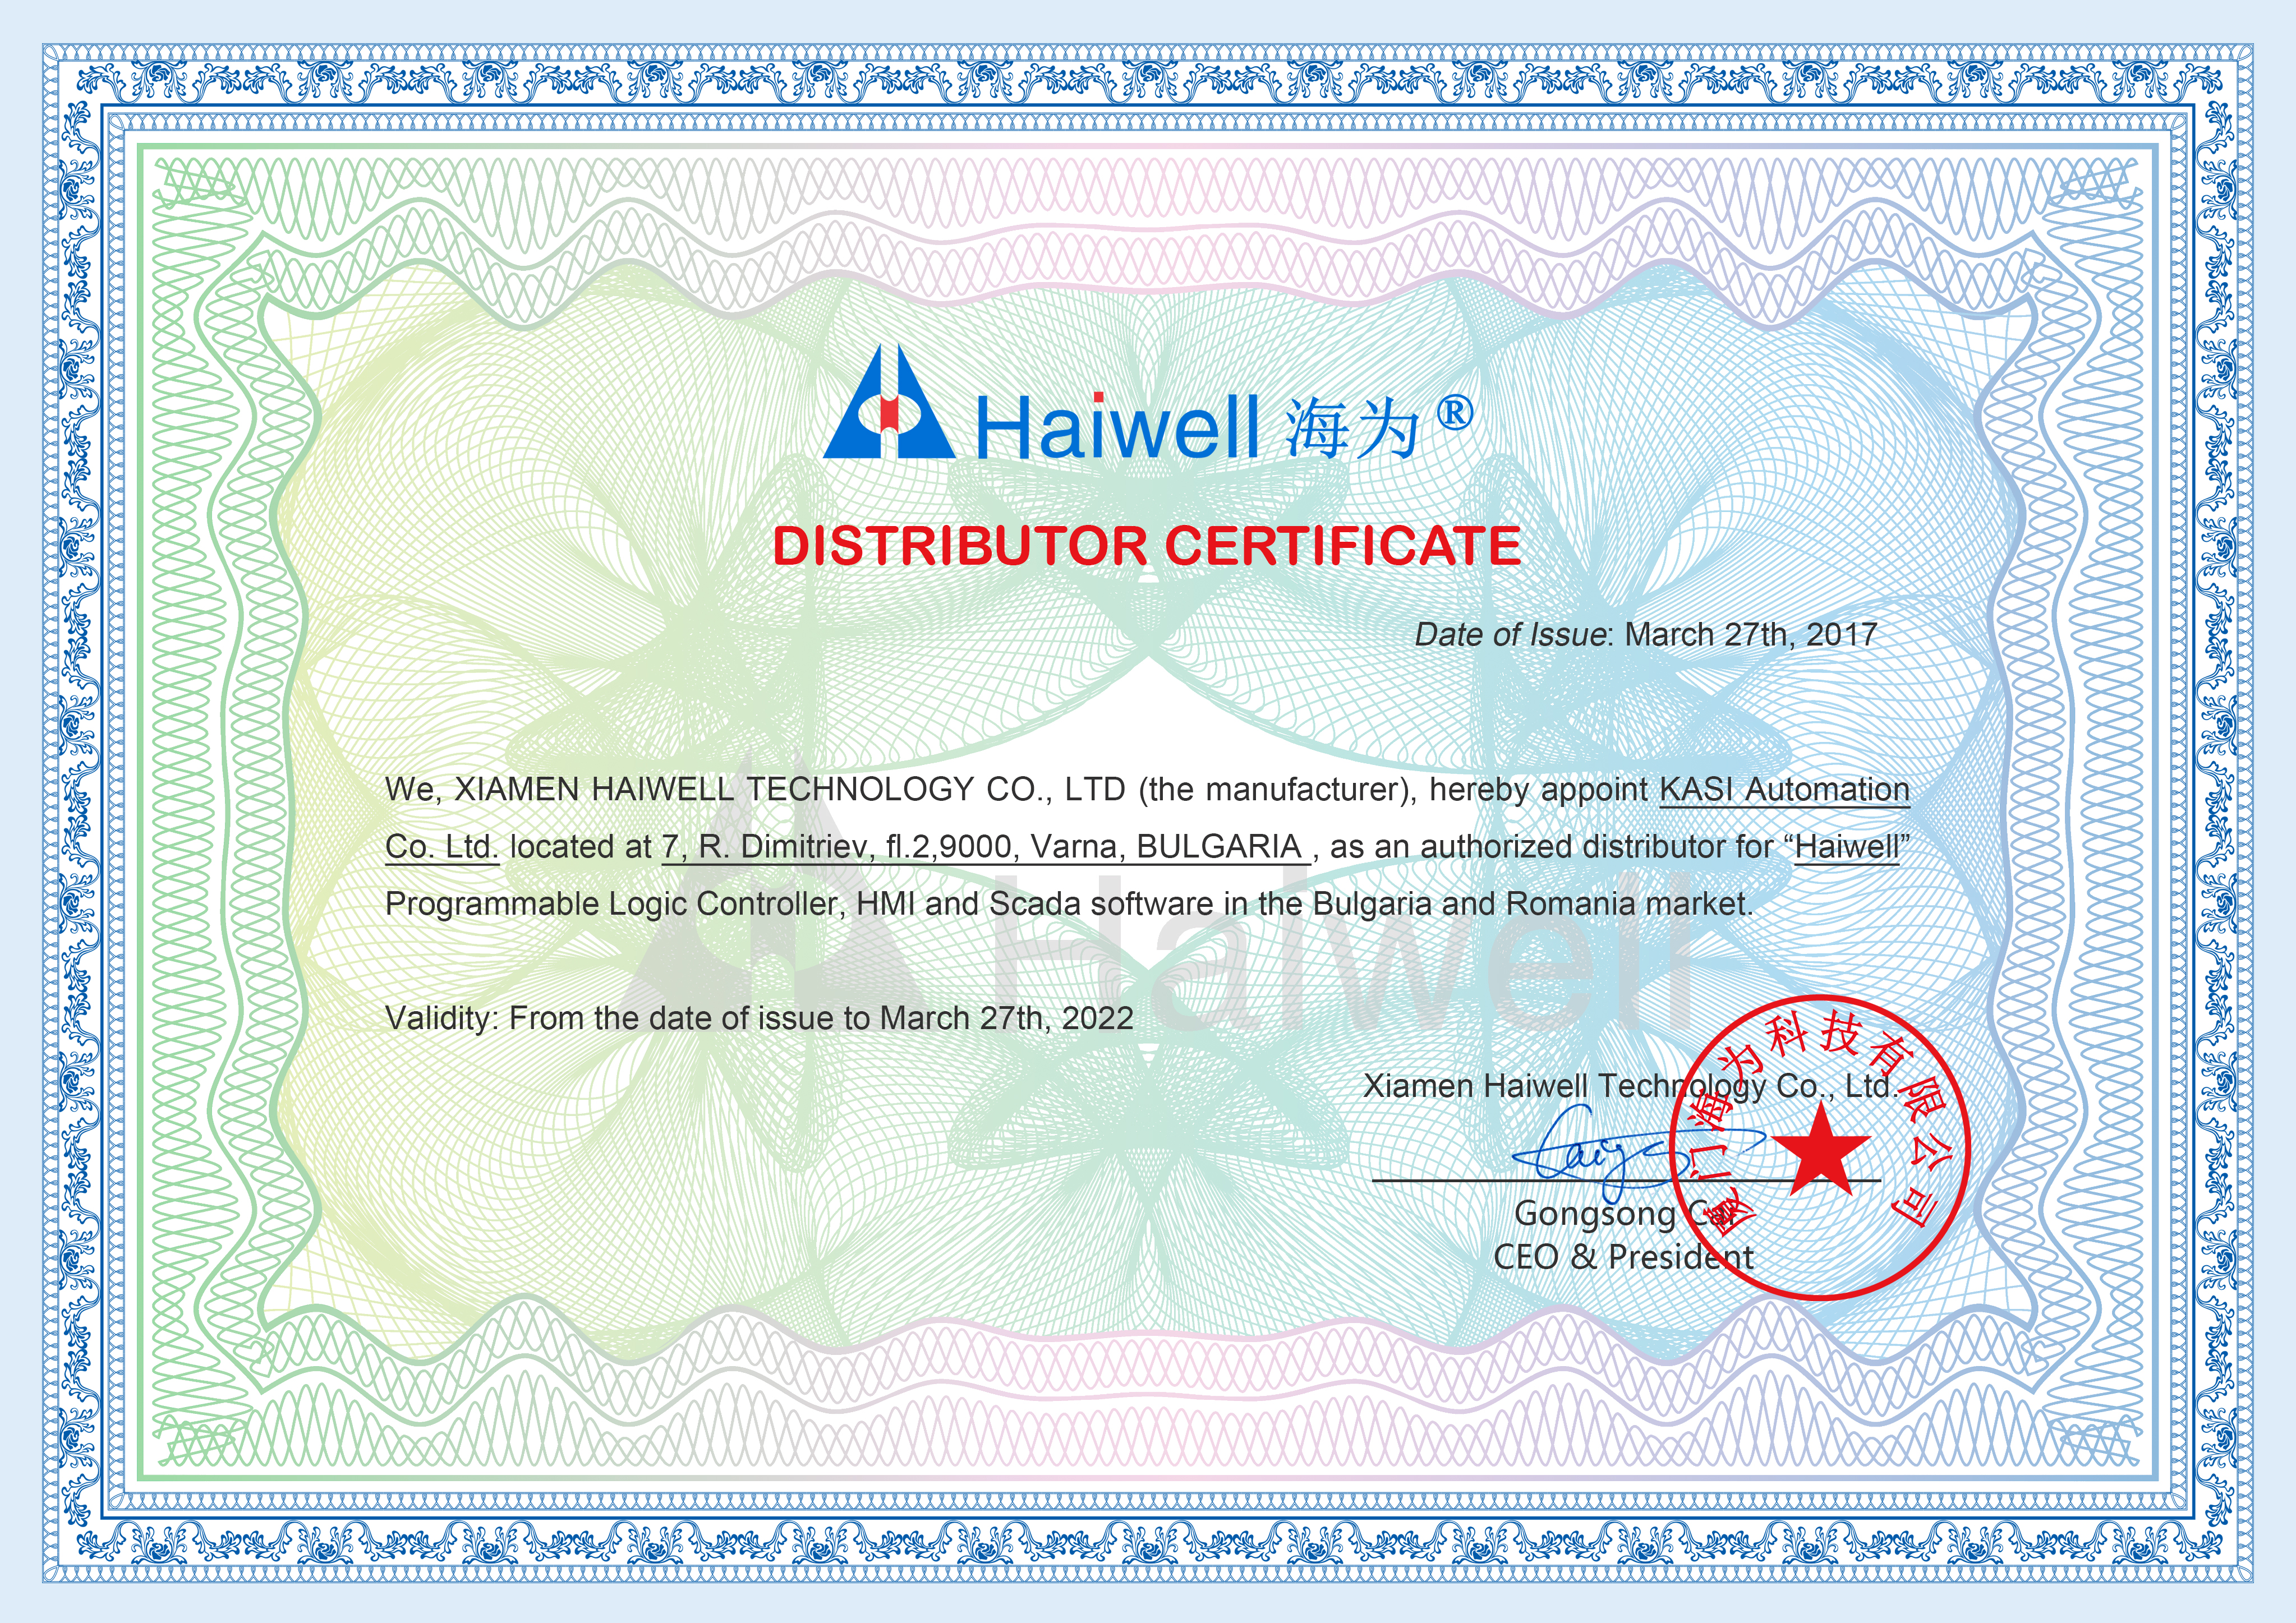 Haiwell Certificate for Kasi